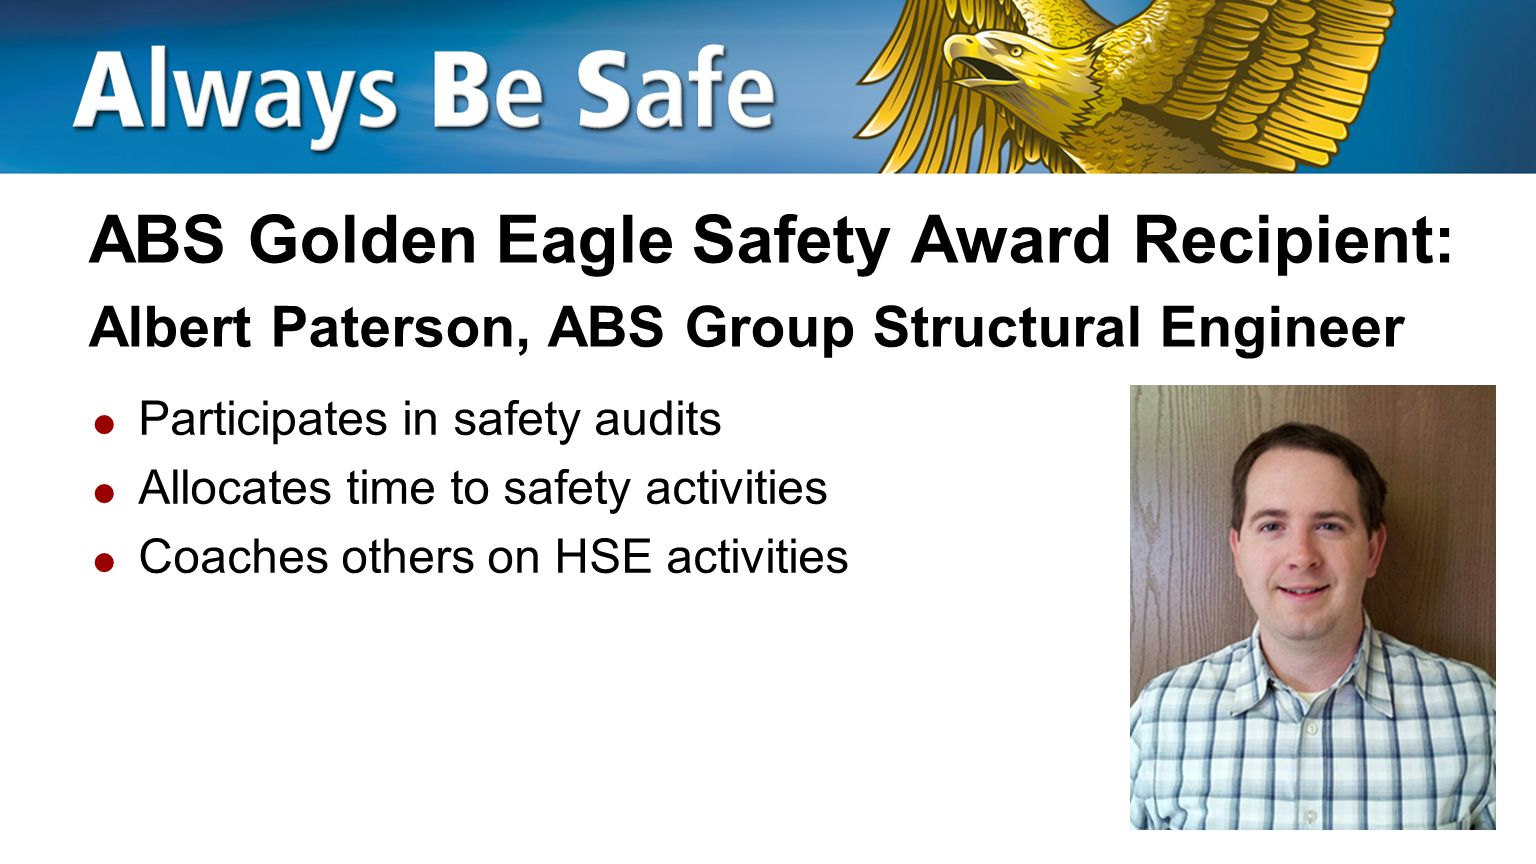 ABS Golden Eagle Safety Award Recipient: Albert Paterson, ABS Group Structural Engineer